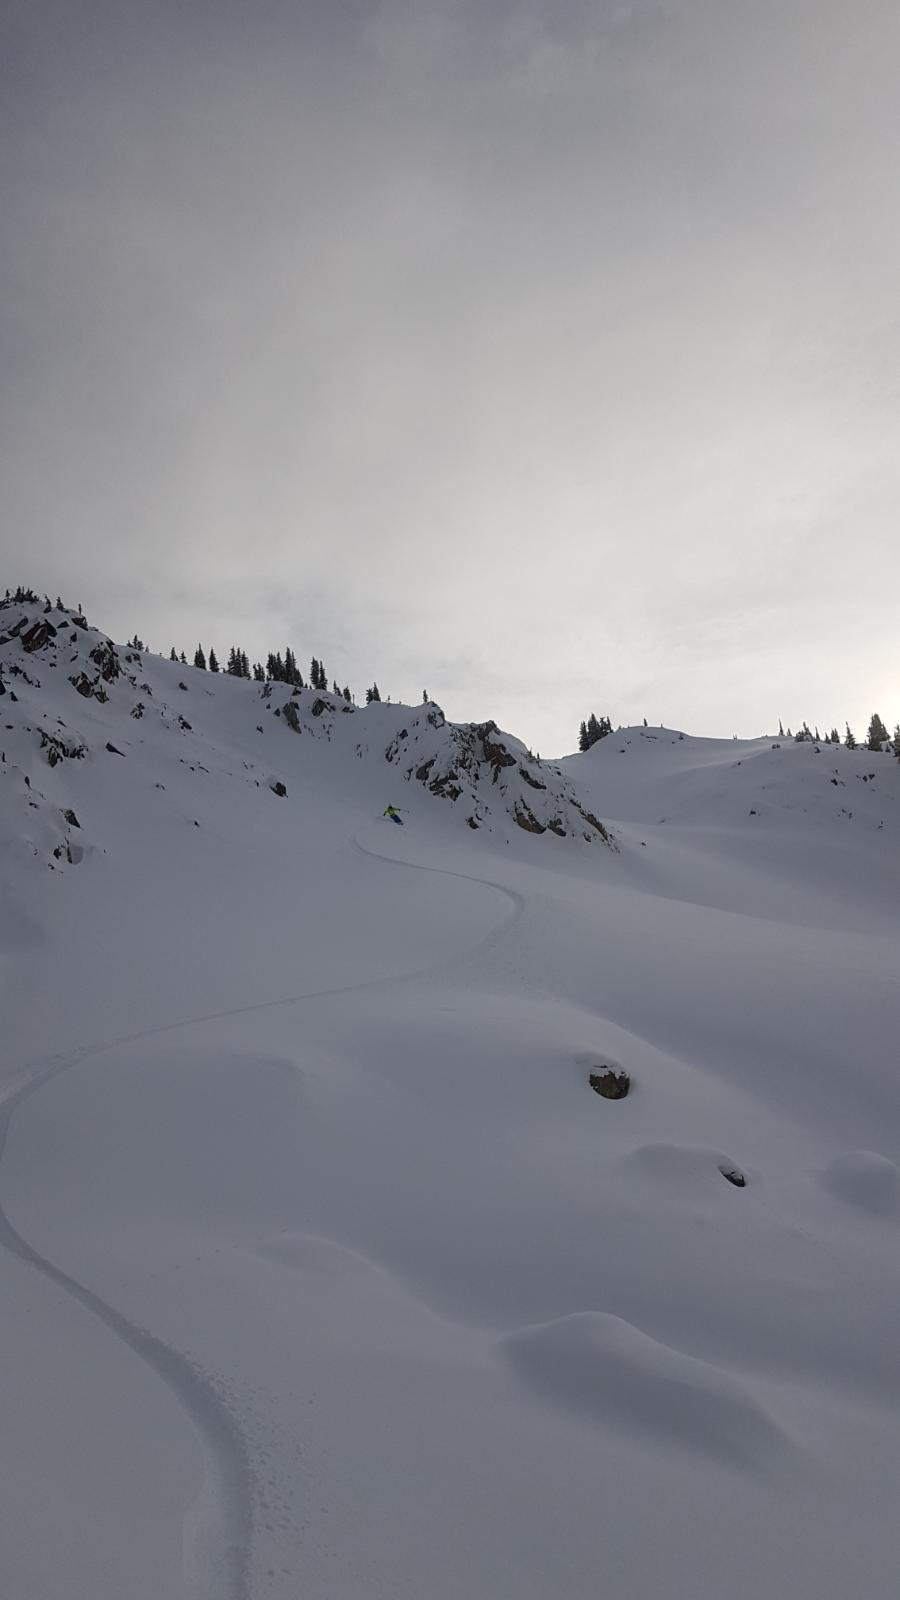 First Day Sled Skiing 19/20